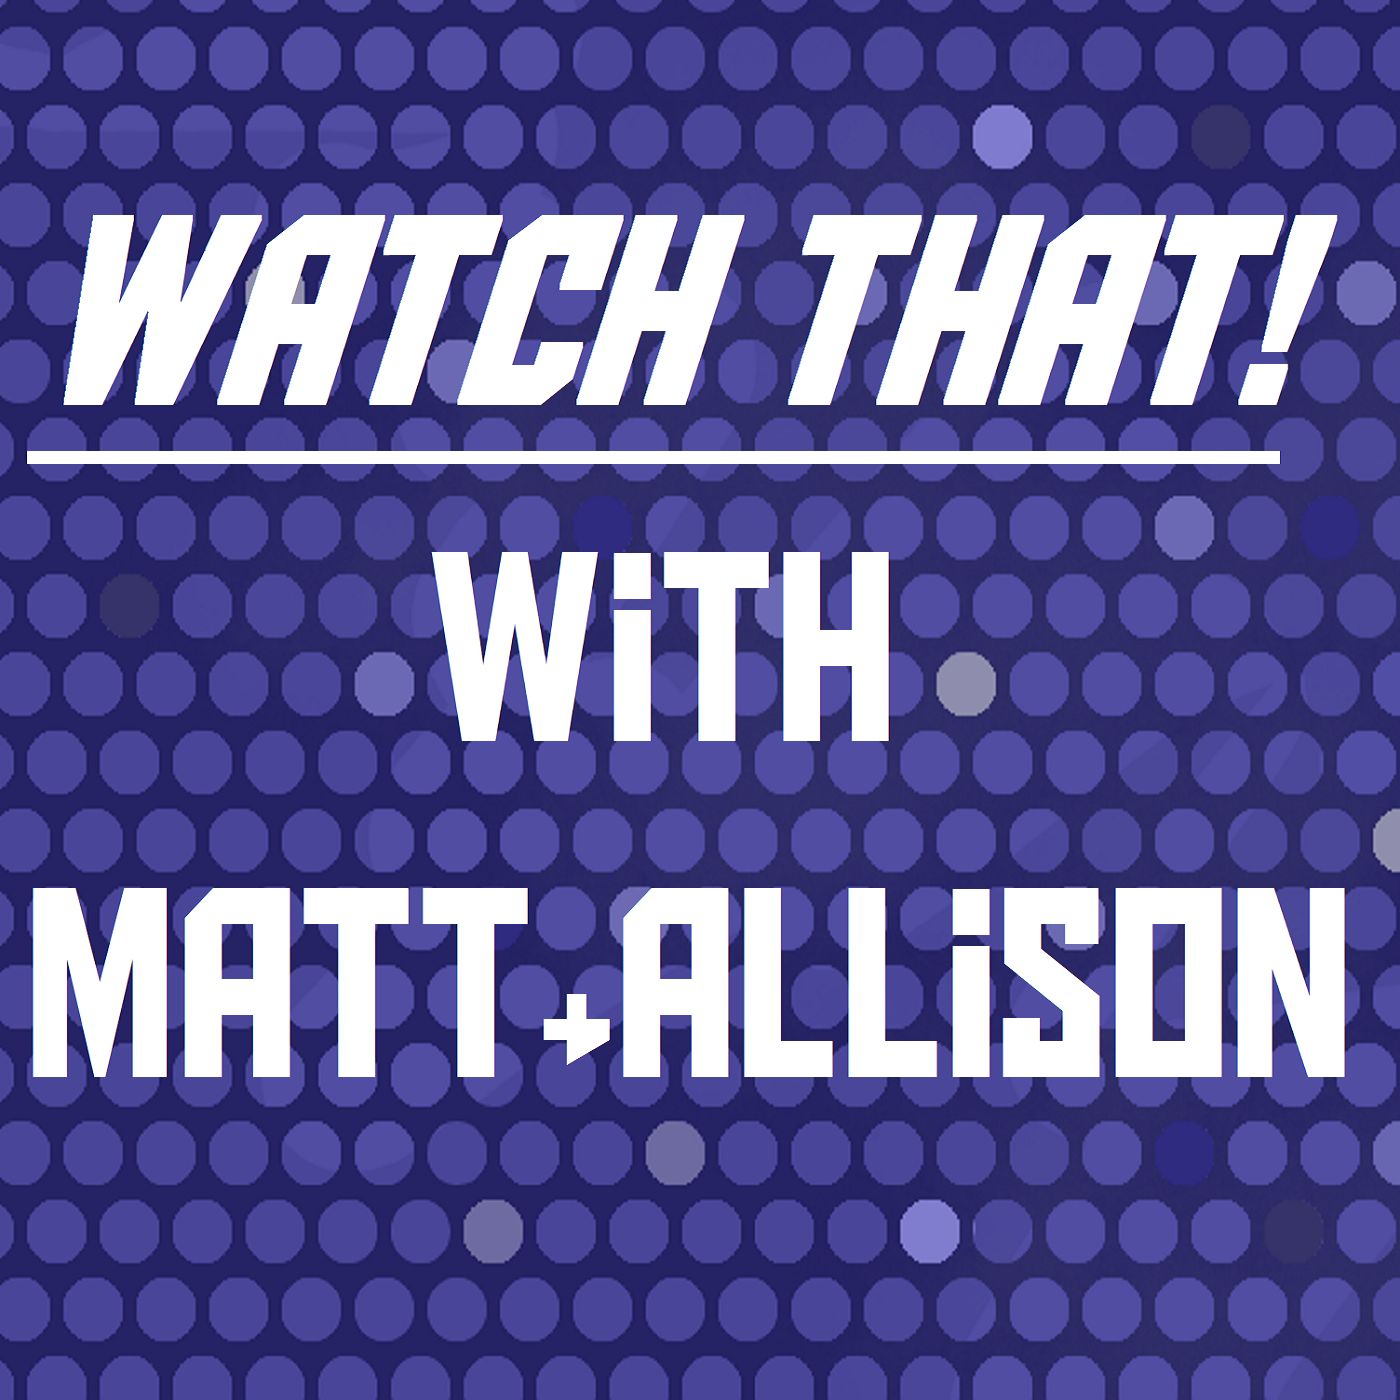 Watch That! W/ Matt and Allison